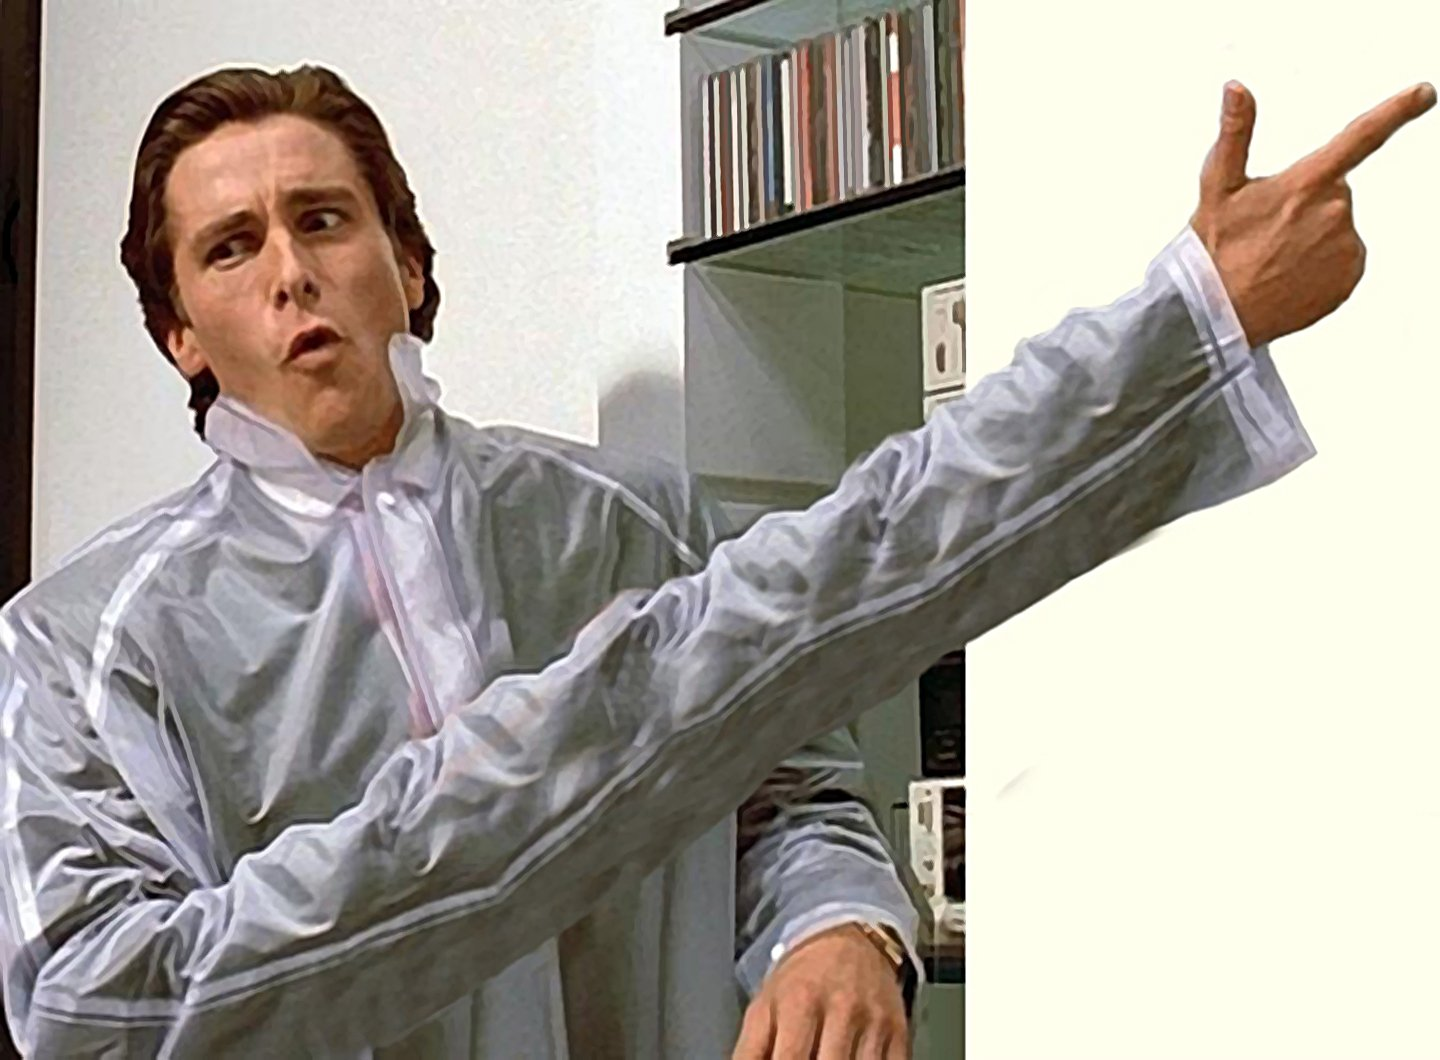 american inequality in american psycho Description: a wealthy new york investment banking executive hides his alternate psychopathic ego from his co-workers and friends as he escalates deeper into his illogical, gratuitous fantasies.